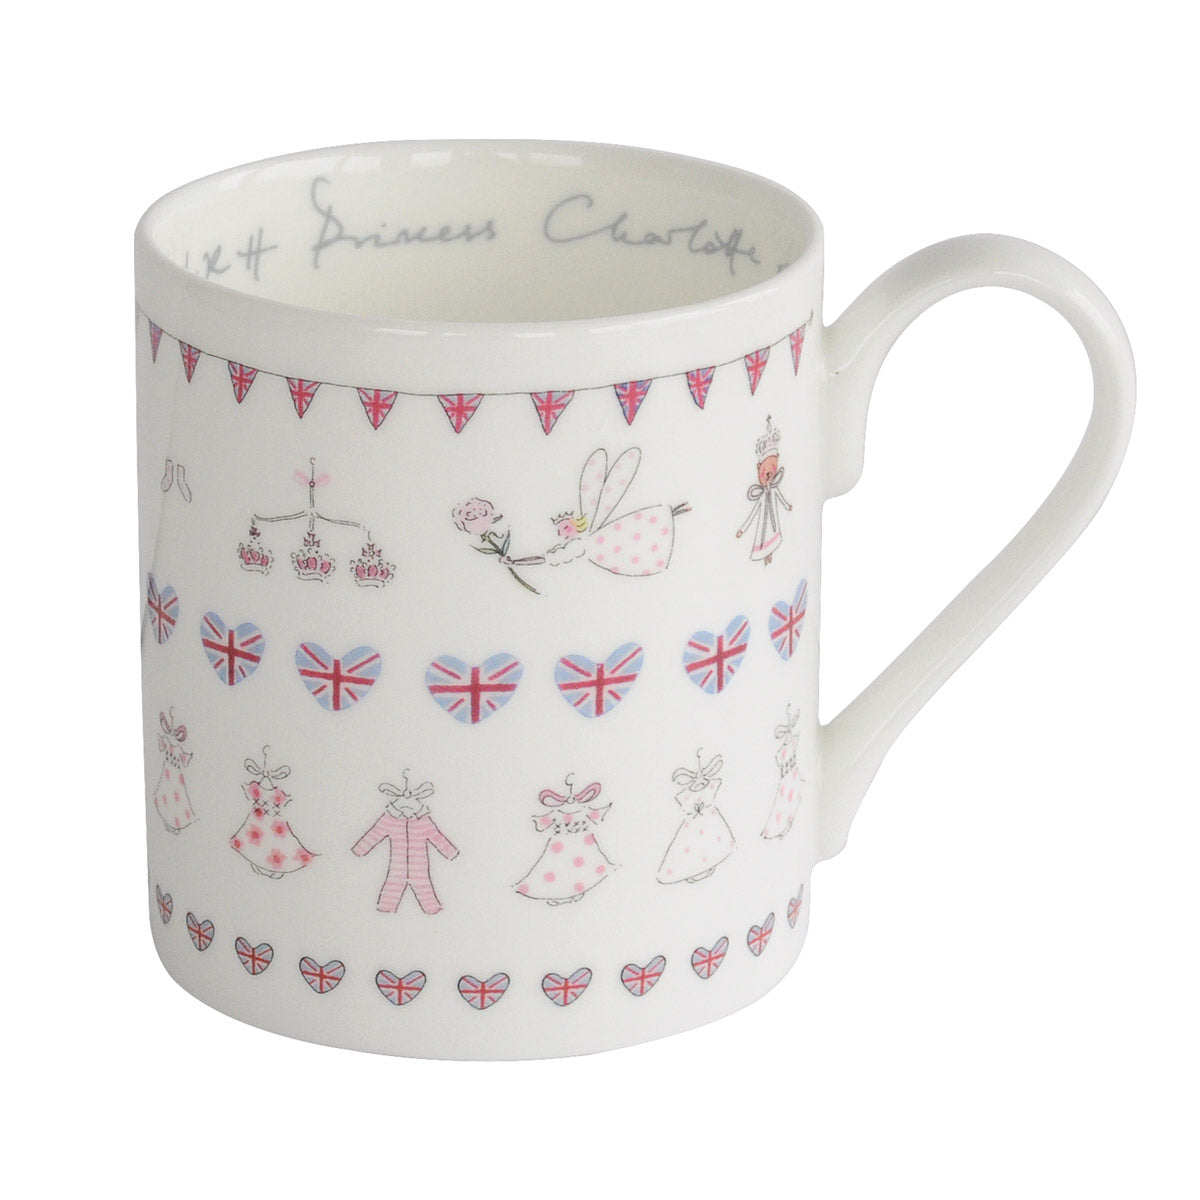 Royal Baby Princess Charlotte Mug